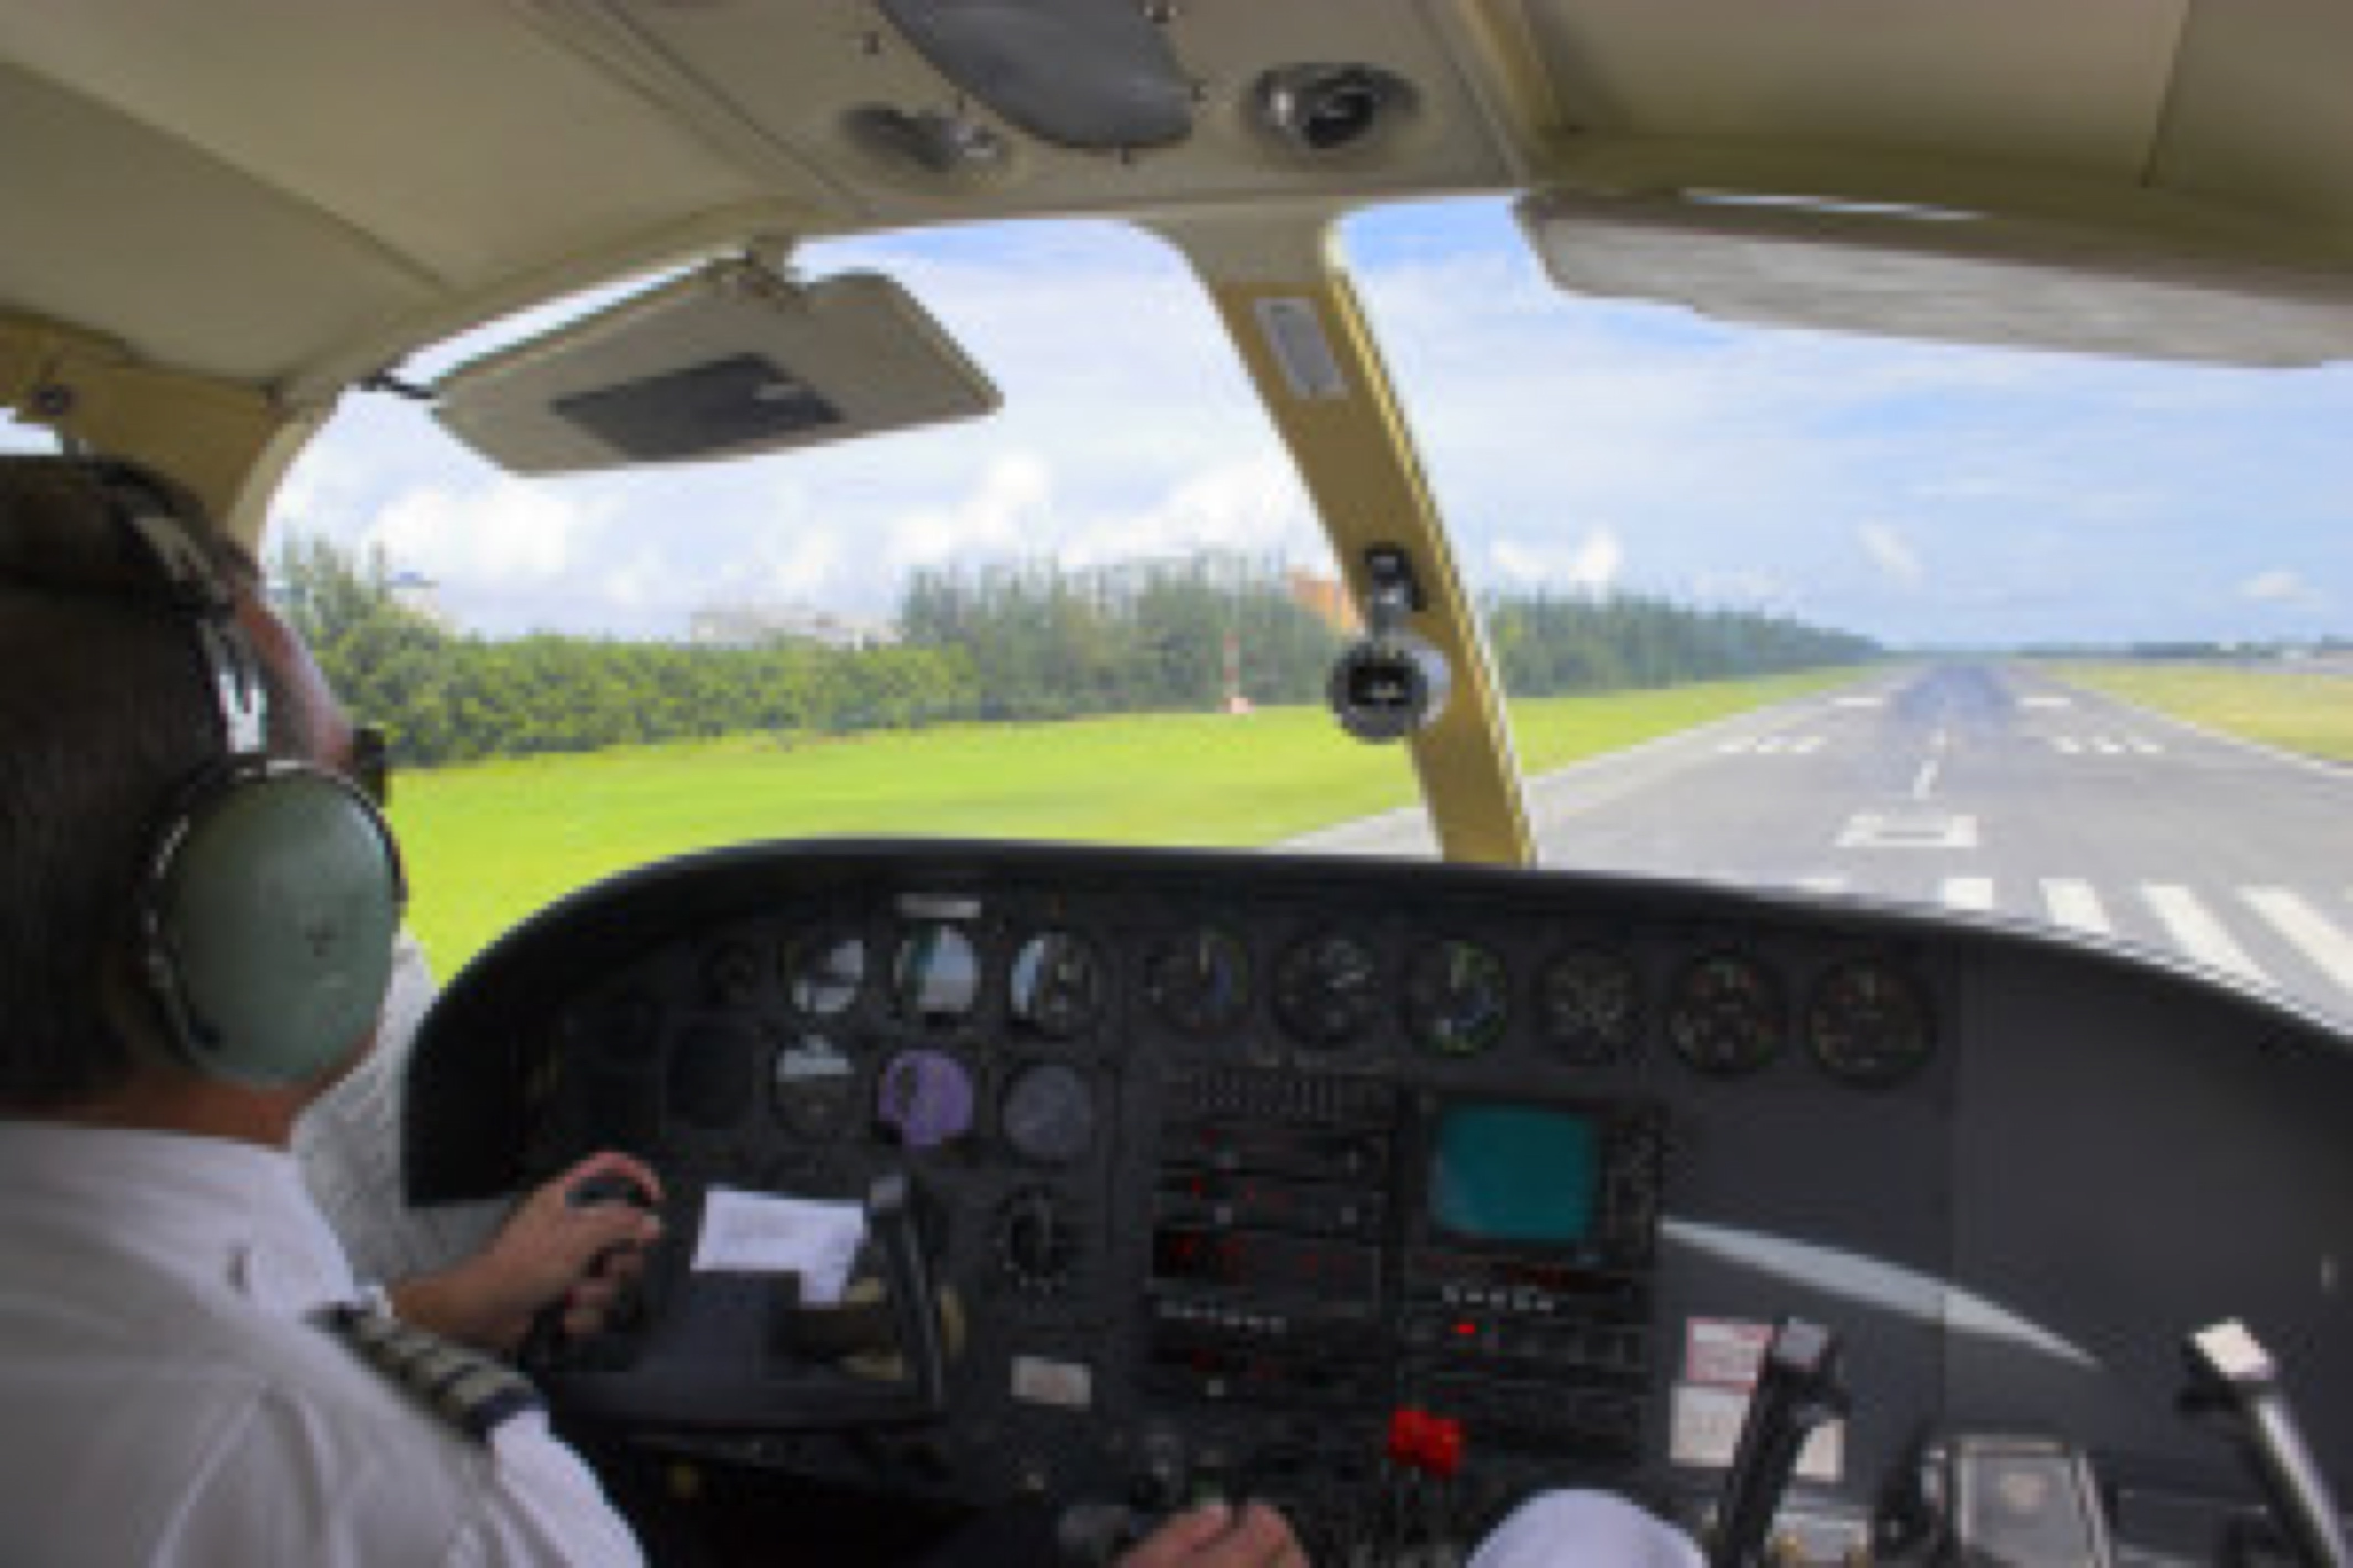 Small plane pilot flying and landing over tropical island in Caribbean